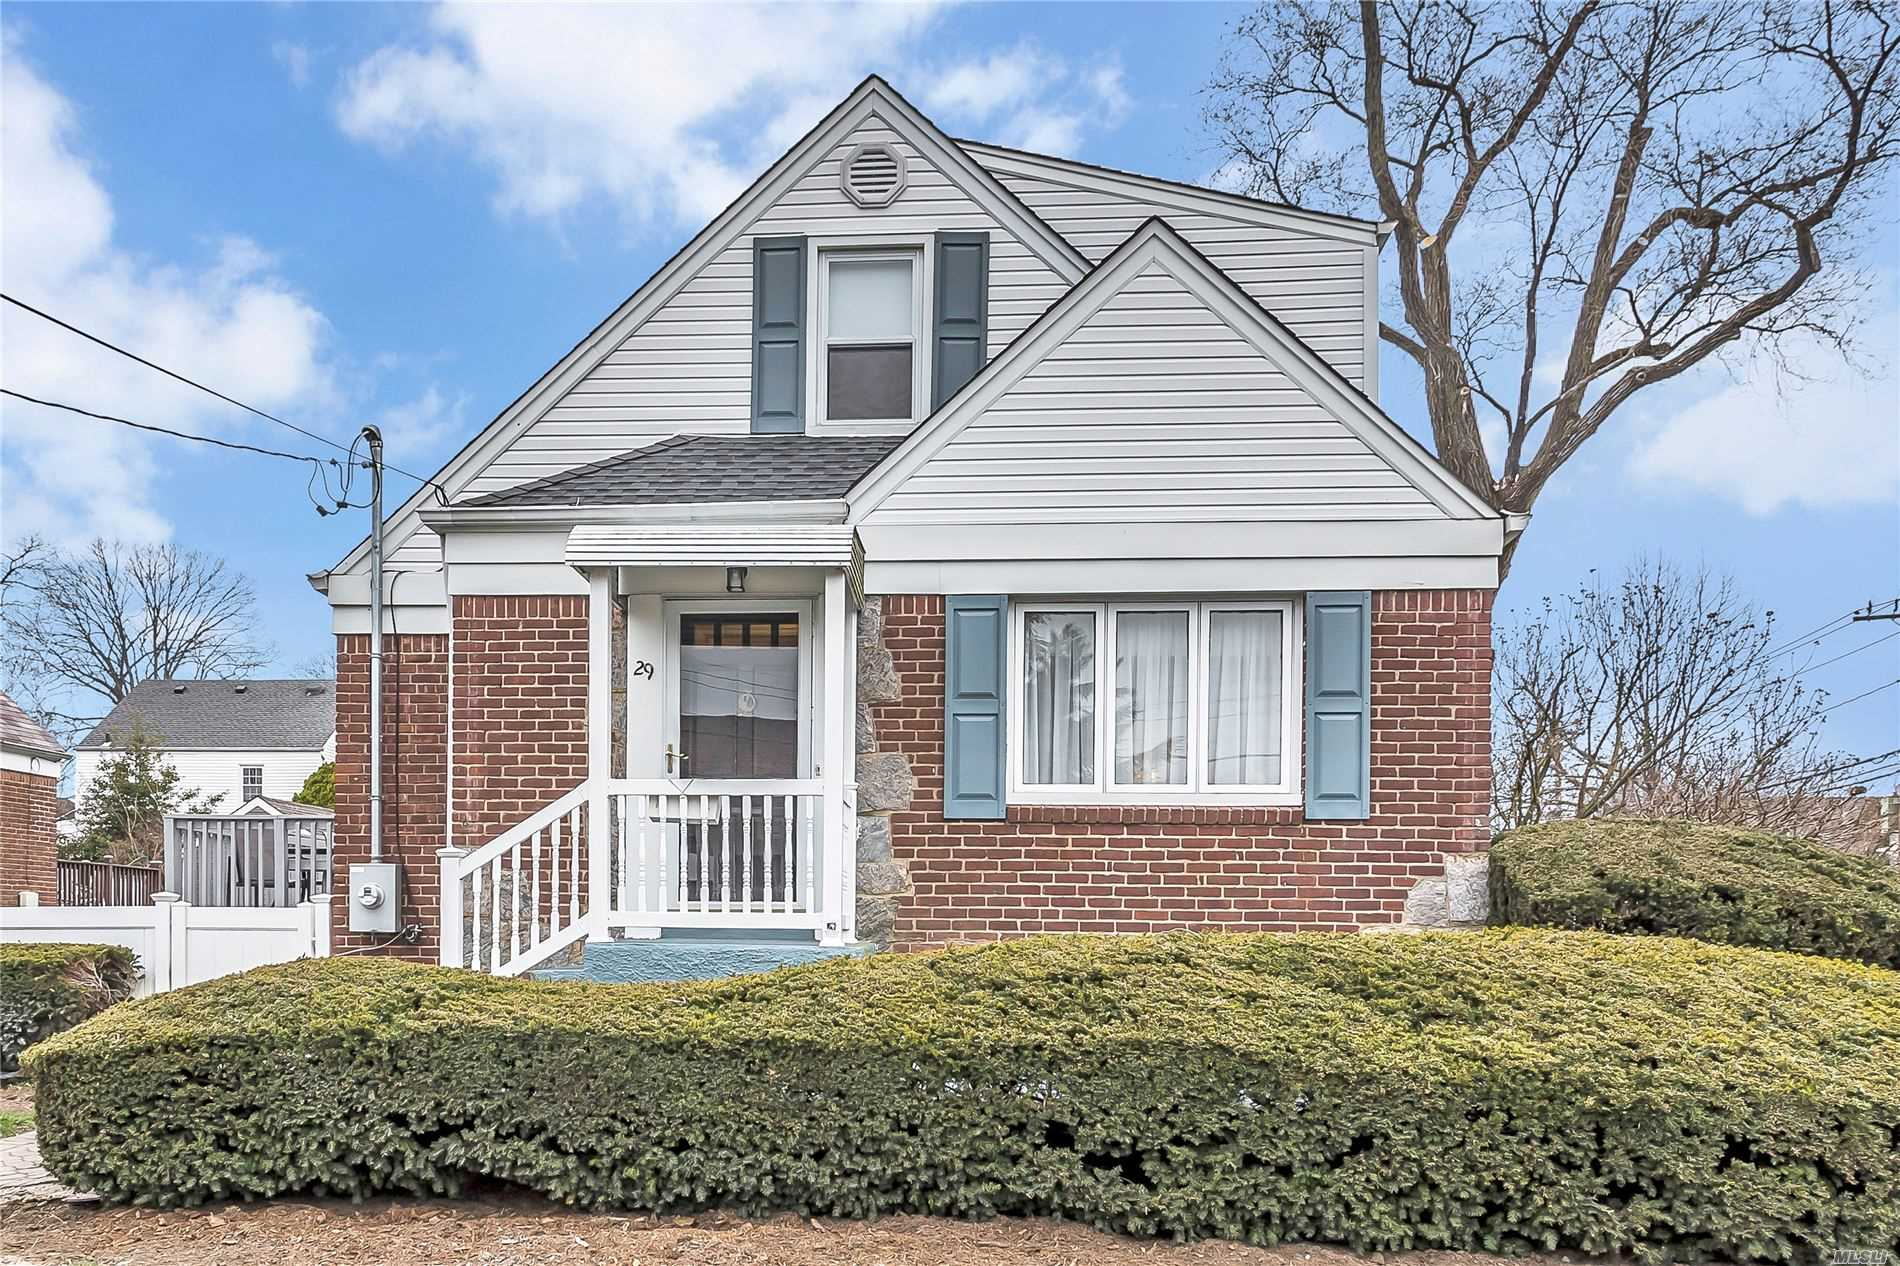 Gorgeous updated home in SD#20. Entry Foyer, FDR, LR, Large updated (26' long) granite EIK, leads to Den w/ vaulted ceiling, great for entertaining, Full Bath, BR. 2nd Fl: 2 BR w/ Cedar closets, Full Bath. Basement: Full finished W/ Laundry, Full Bath. Fenced in Backyard. Close to LIRR (35 min to NYC) Hwys, Shopping.